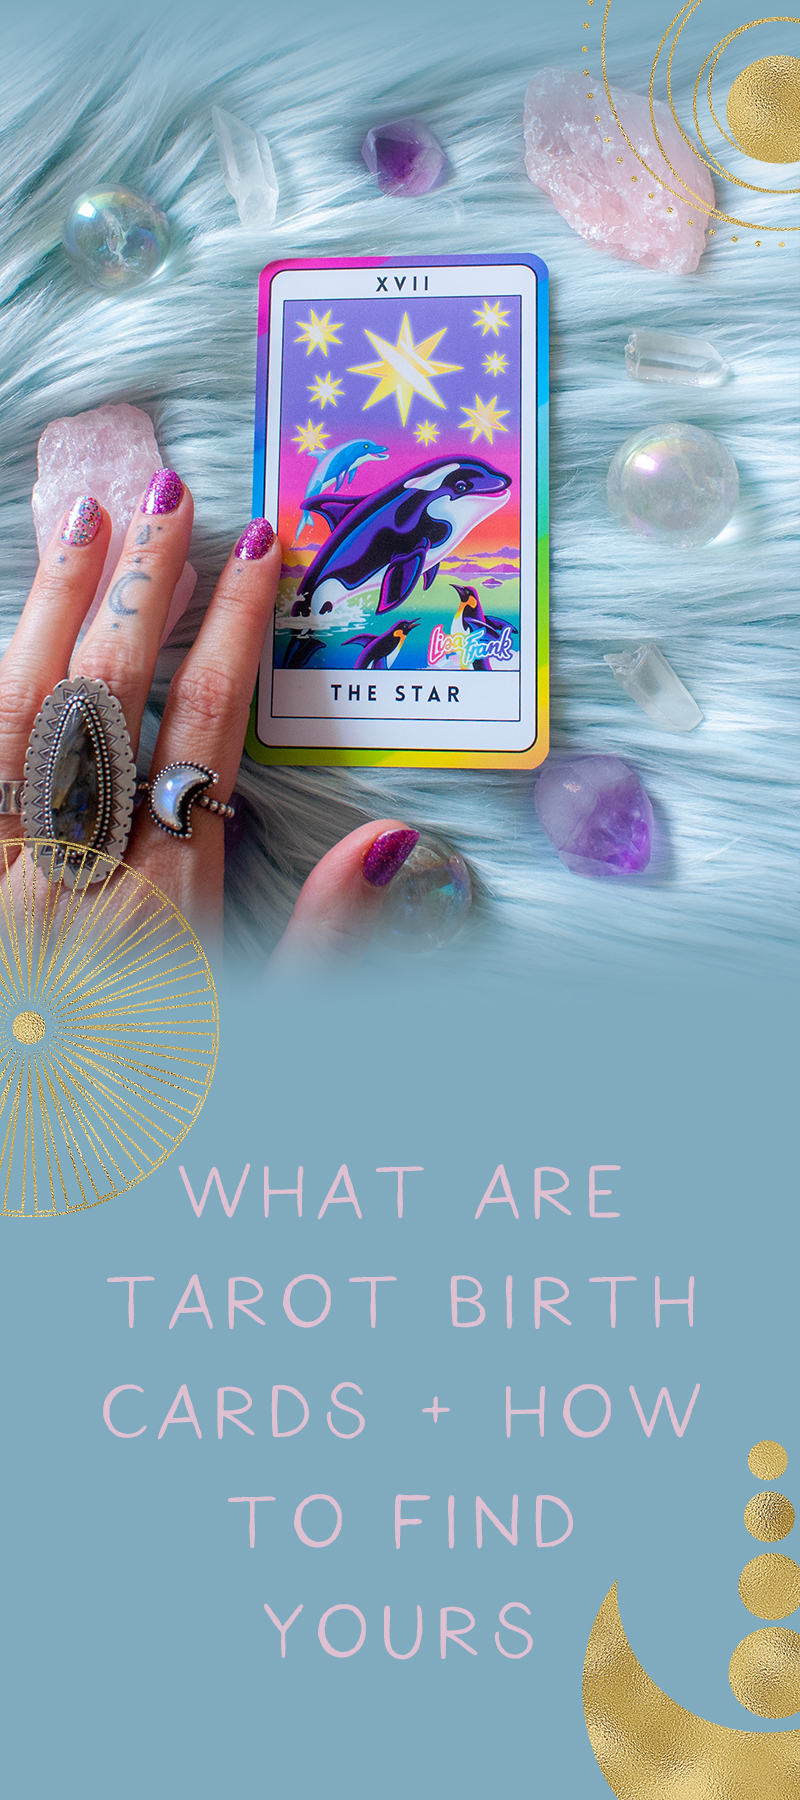 Pic2-what-is-the-tarot-birth-card-and-how-to-find-yours